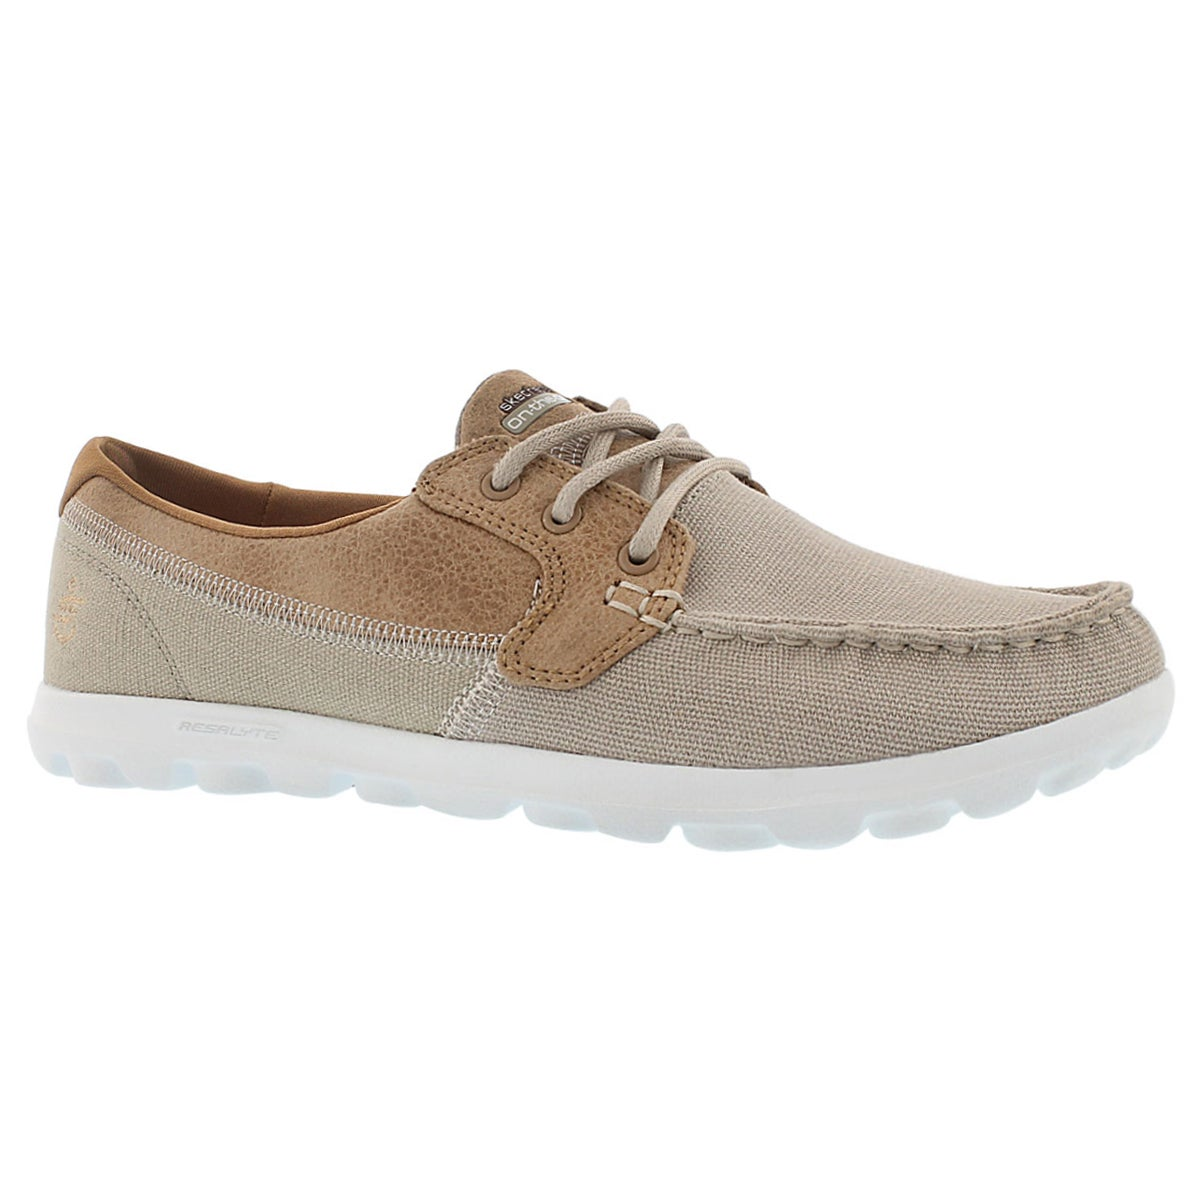 Women's BREEZY natural 3 eye boat shoes